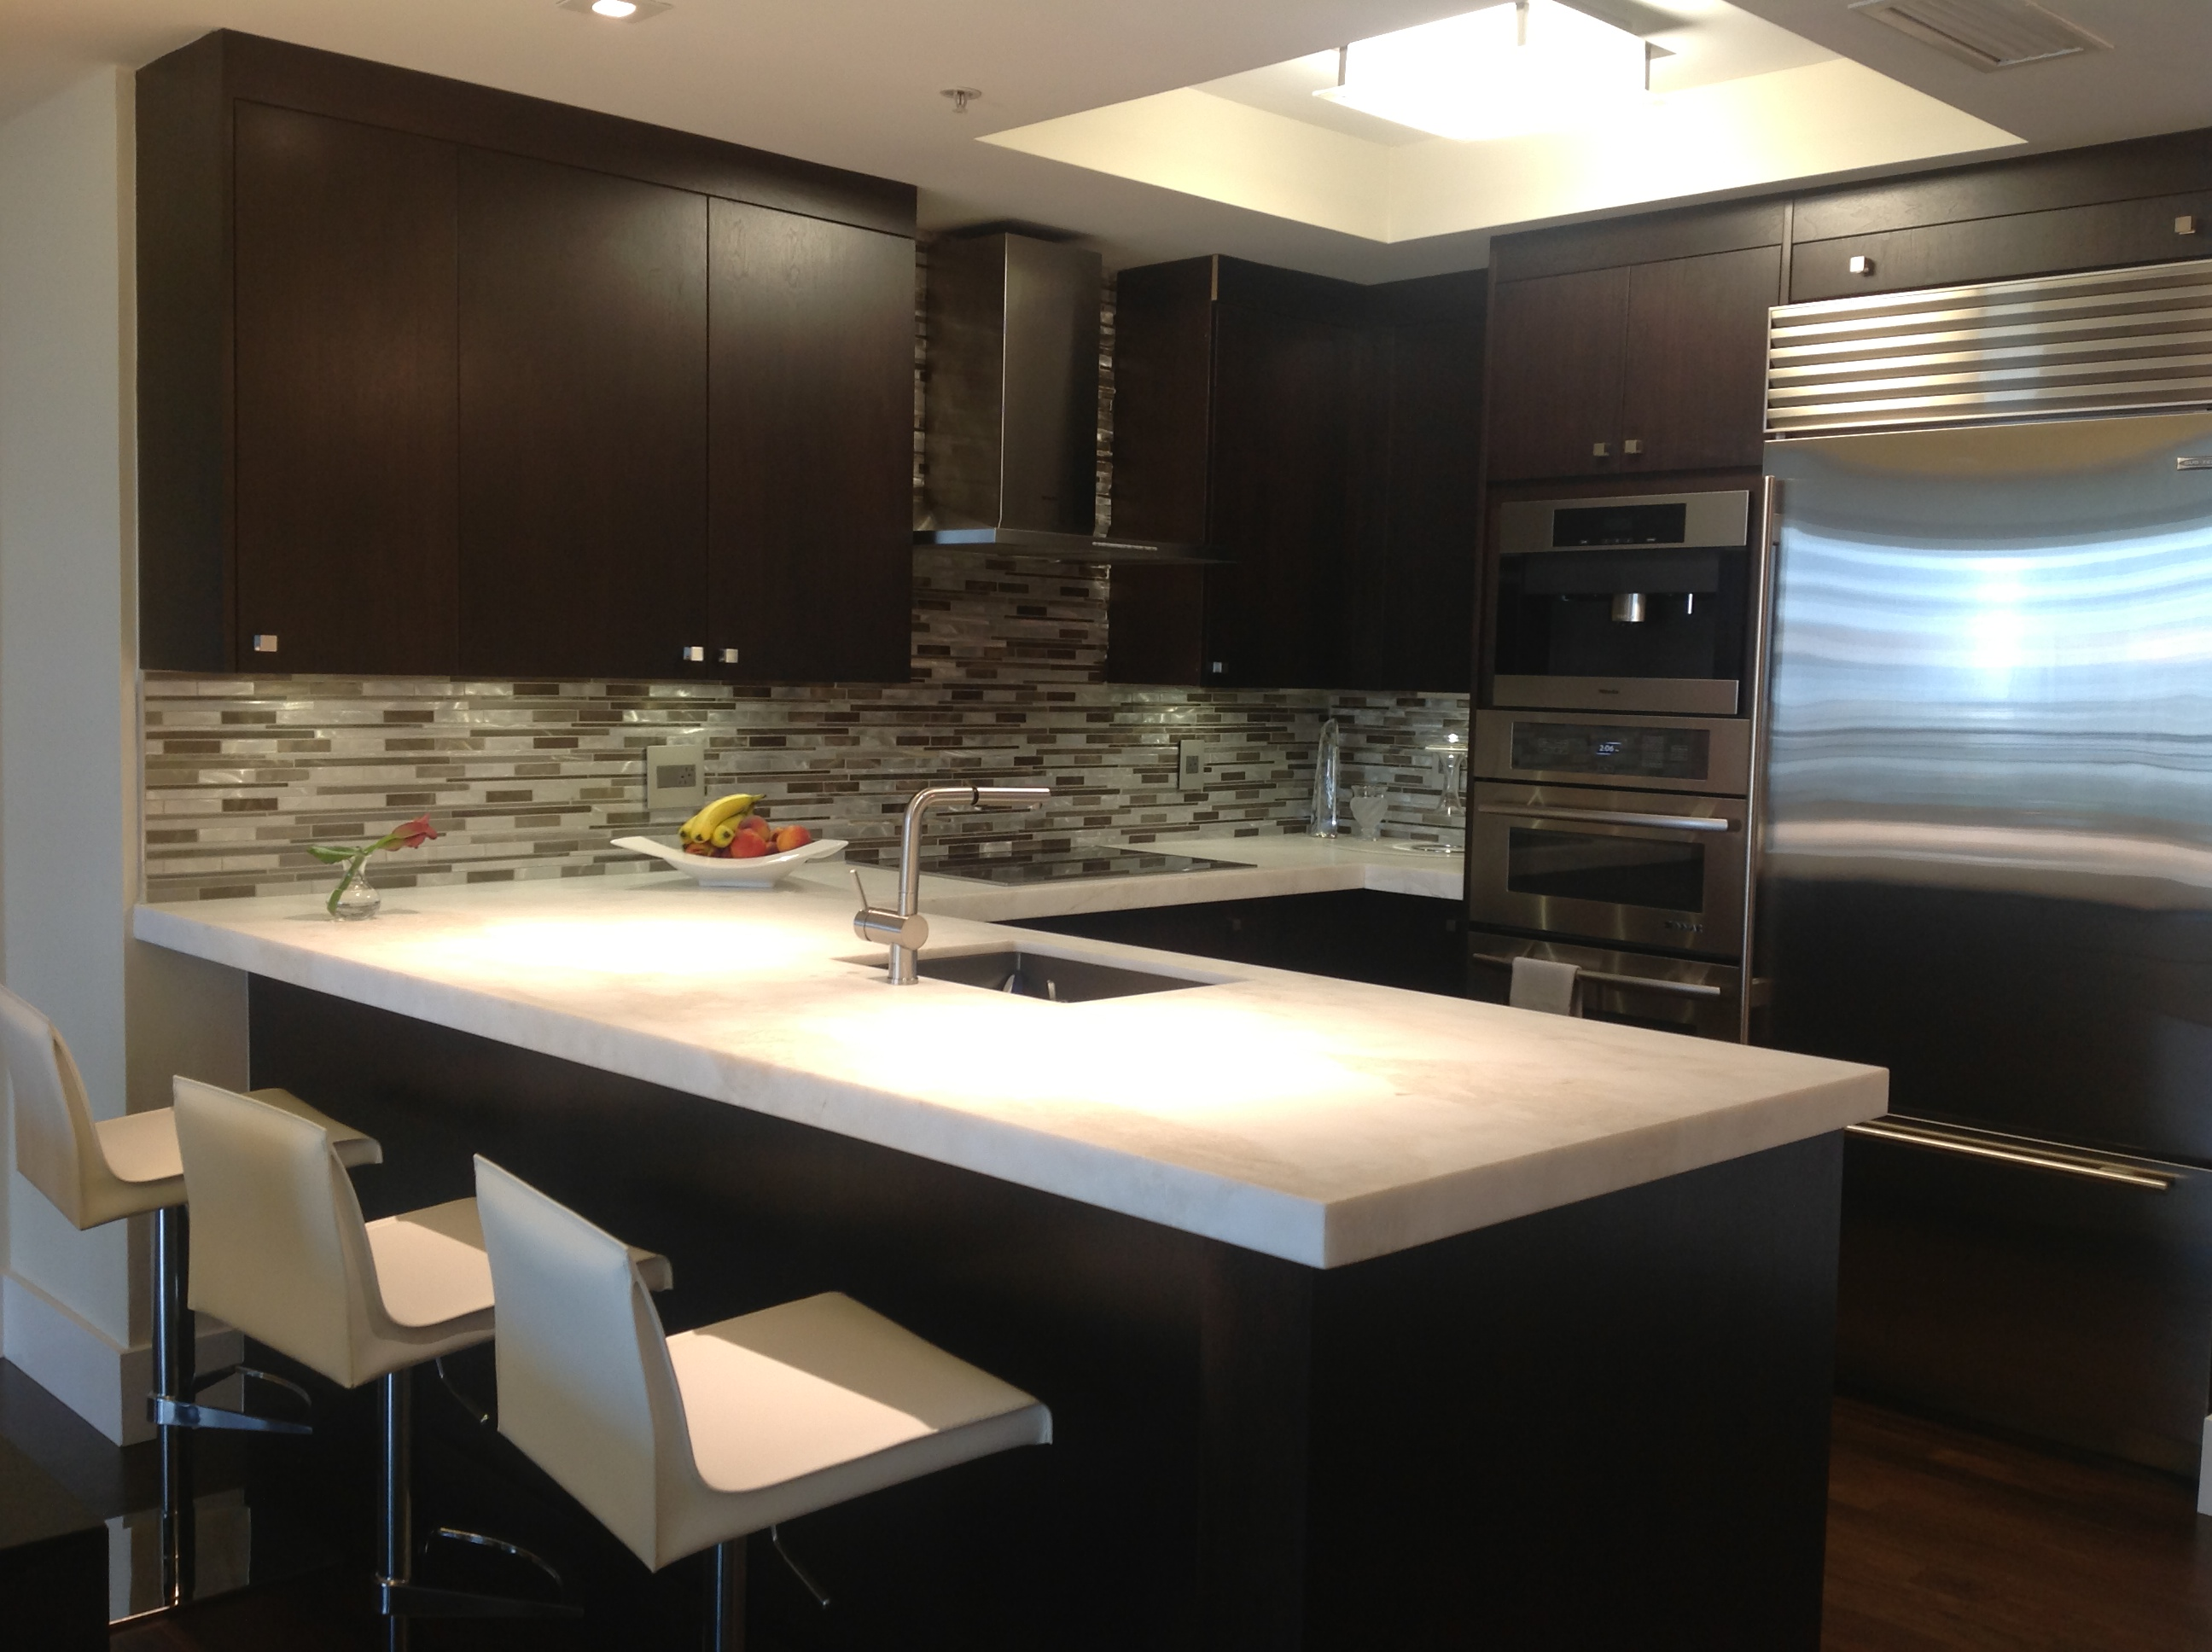 JandJ Custom Kitchen Cabinets Company Luxurious Kitchen - Custom kitchen cabinets design